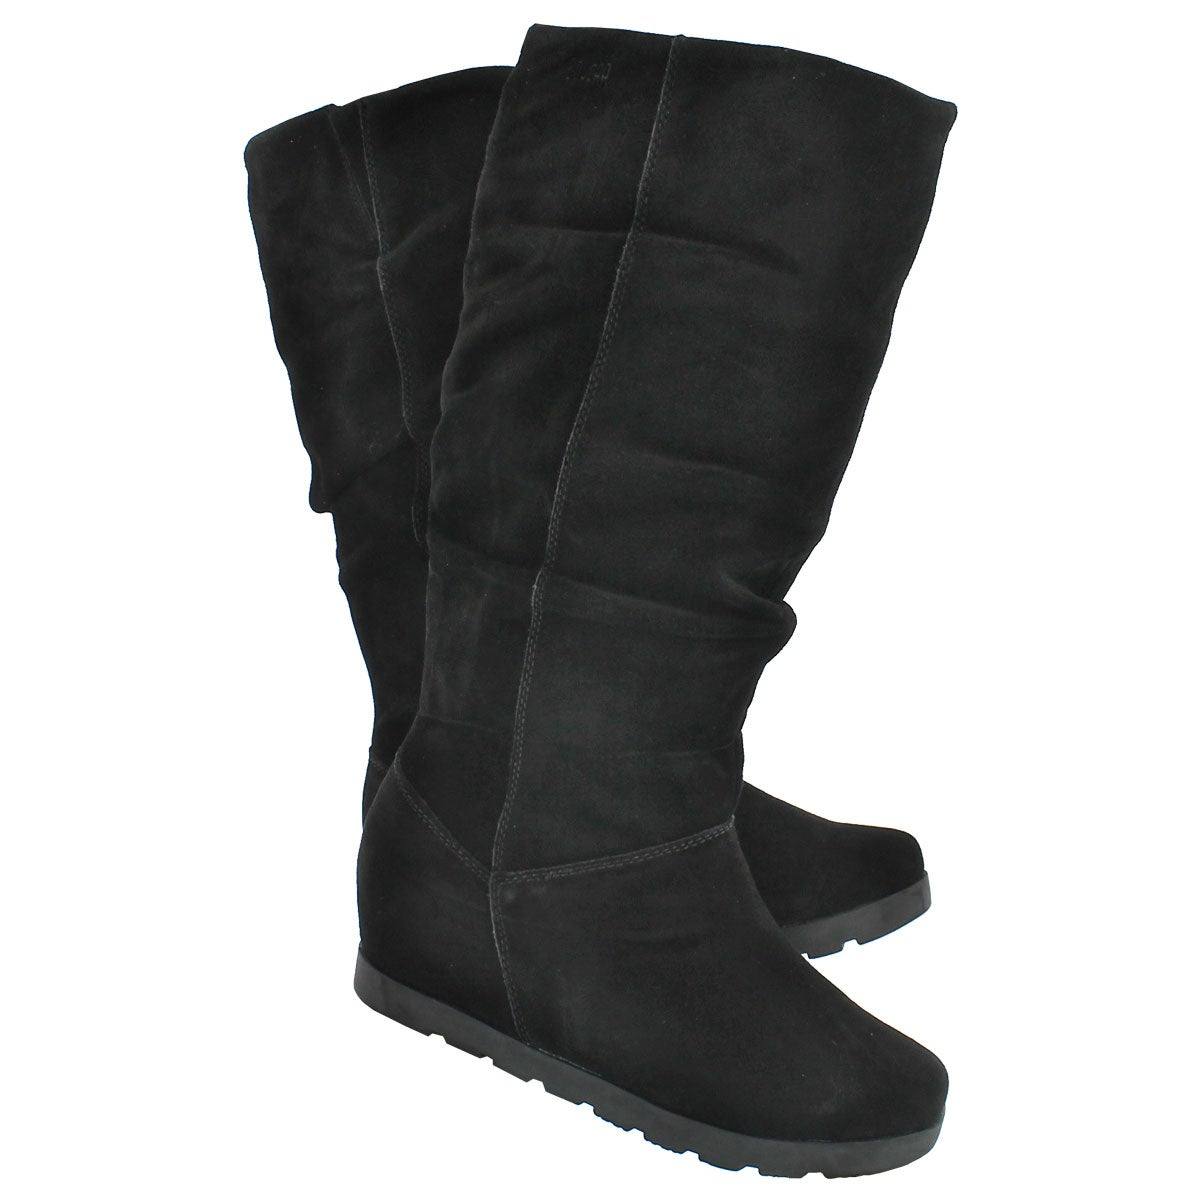 Lds Array black wtrpf tall zipper boot